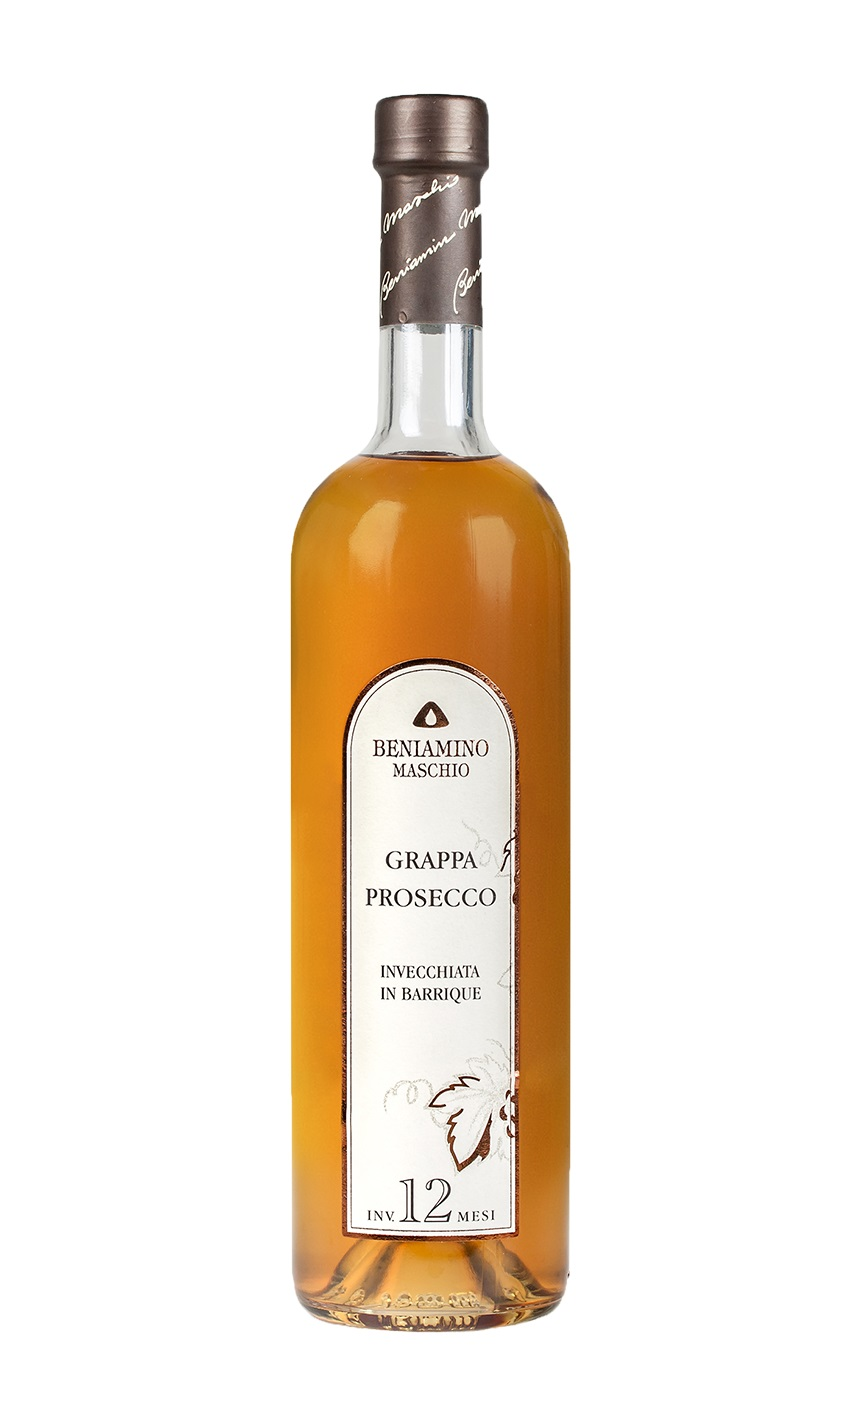 Grappa Prosecco Barrique 12 months